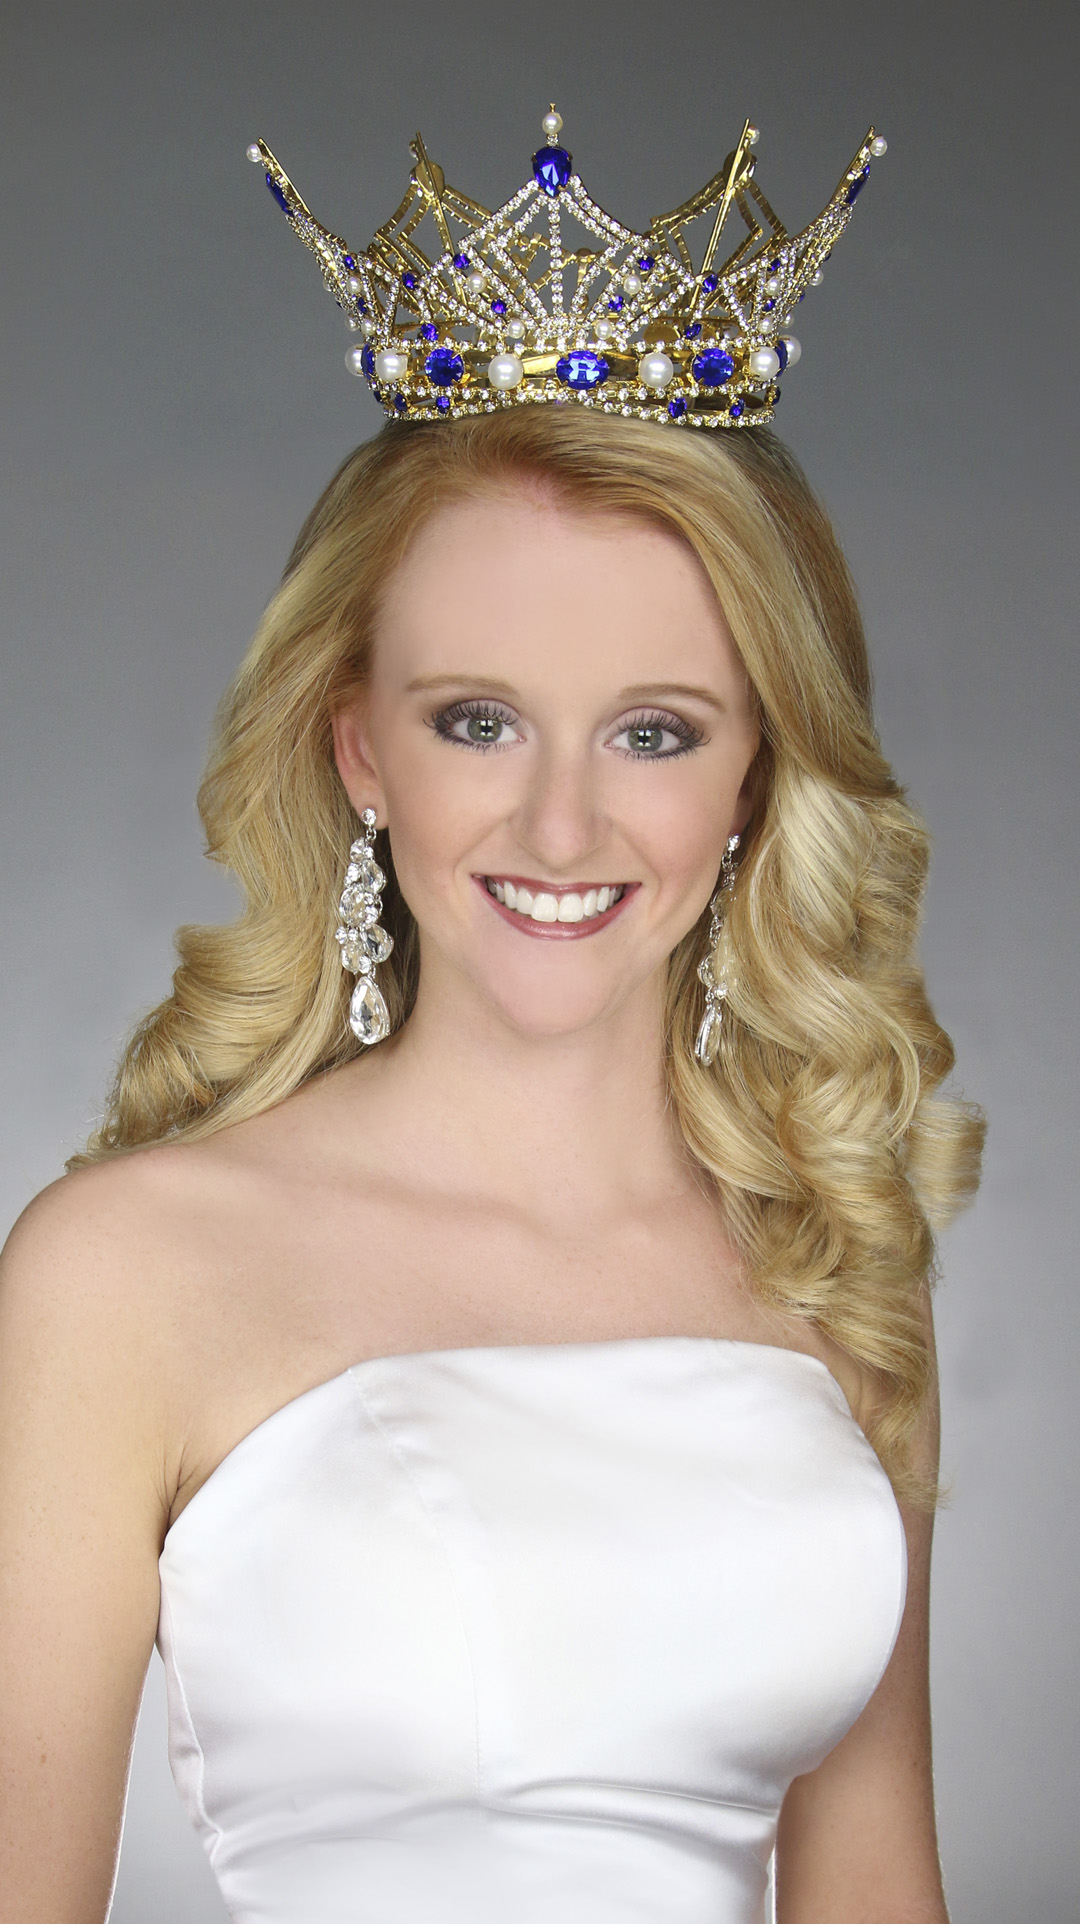 Teen Miss North Carolina